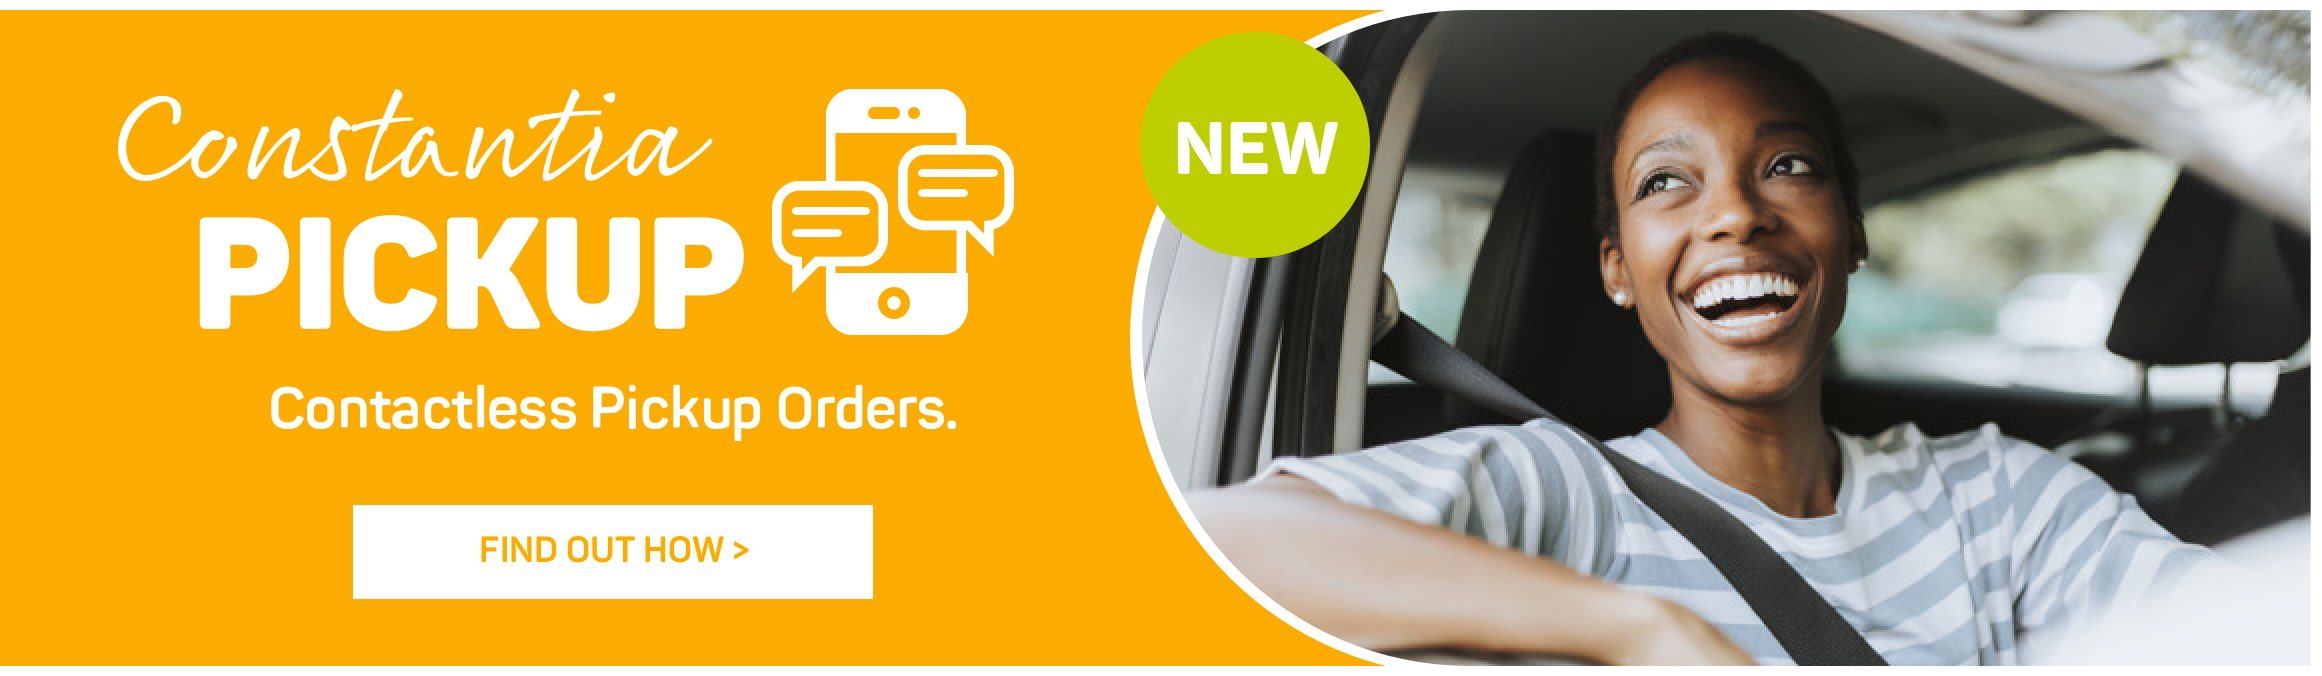 Constantia Pickup. Contactless Pickup Orders. Find out how >